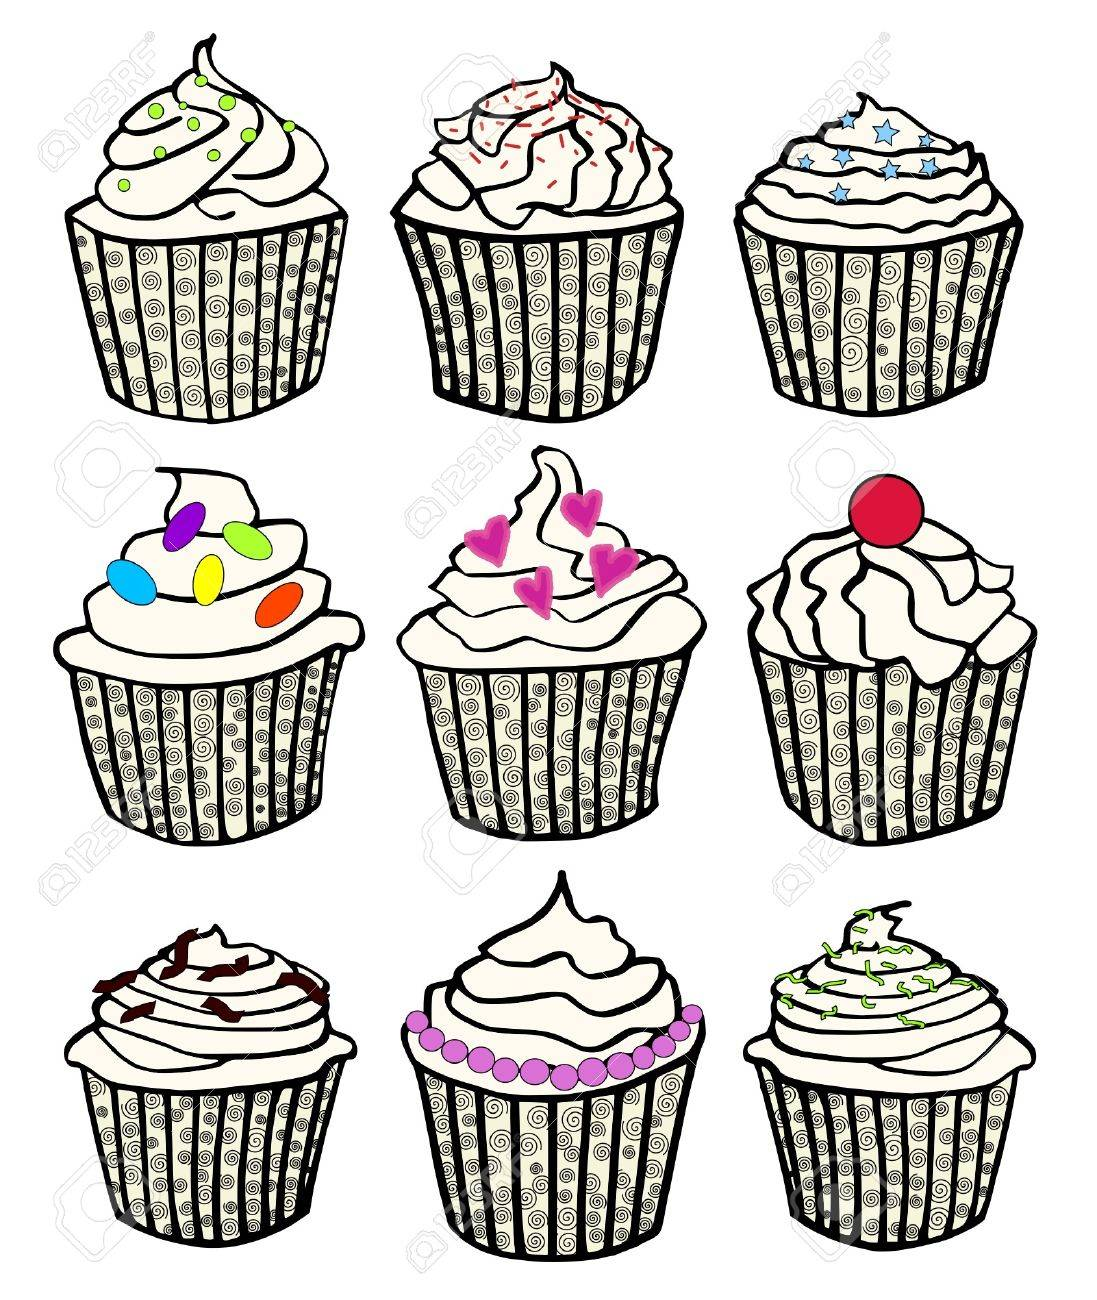 Nine Cupcakes In Fancy Cupcake Liners Royalty Free Cliparts Vectors